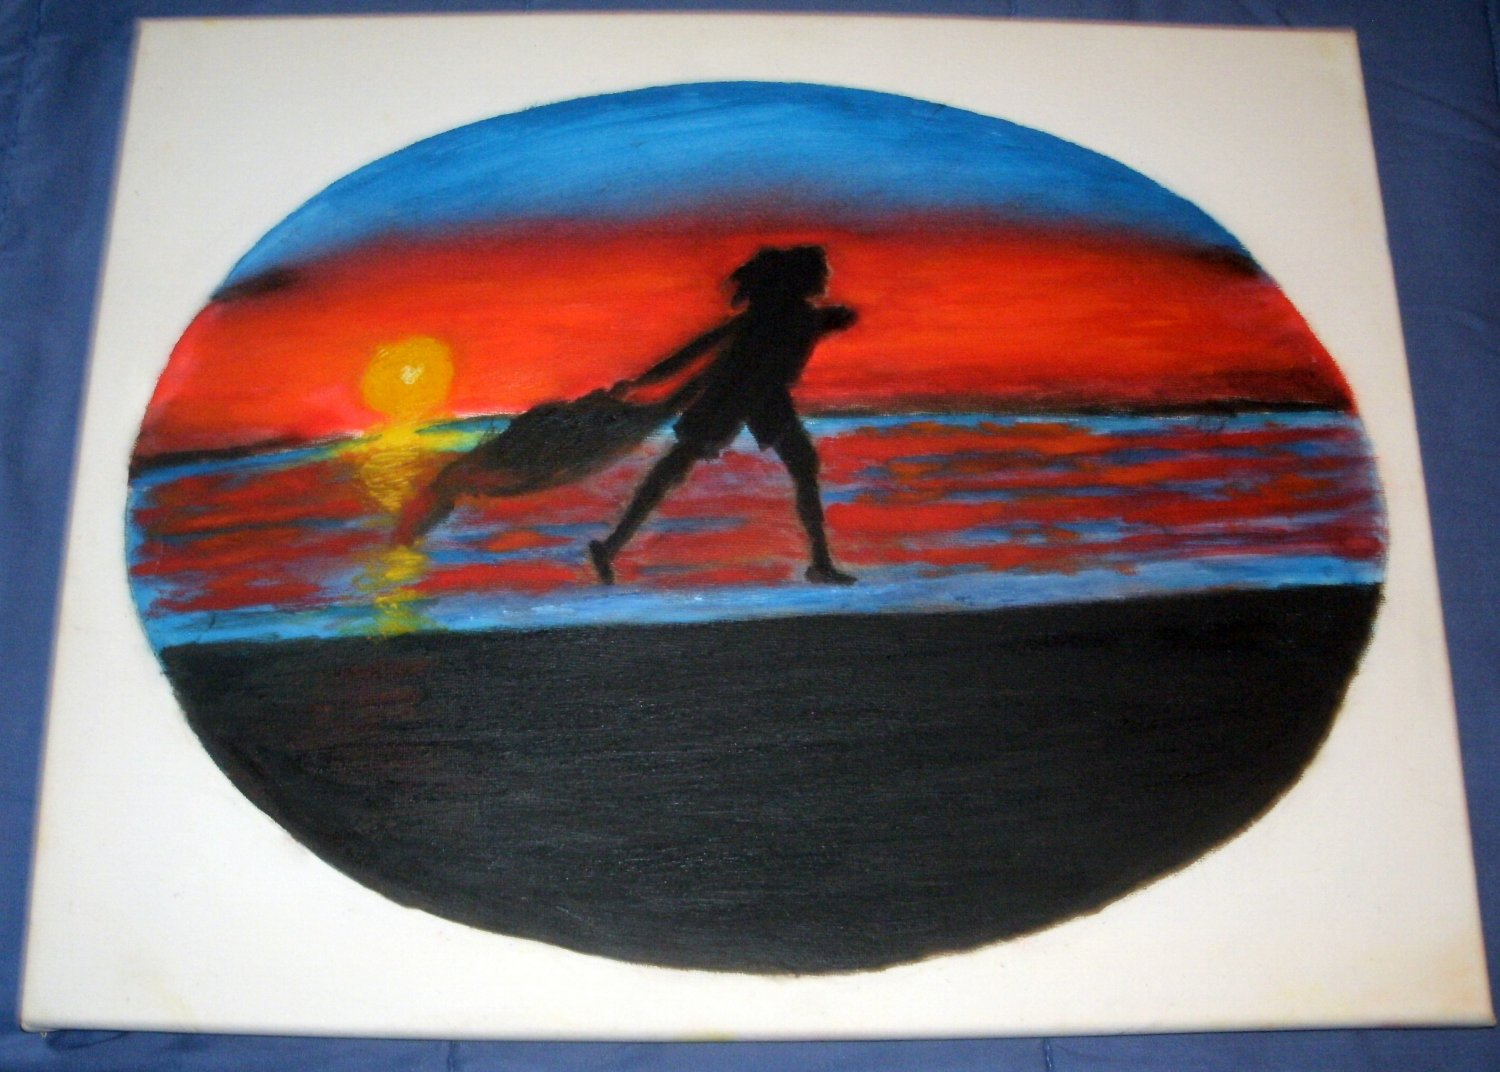 AN OVAL PAINTING/ A SILHOUETTE OF A WOMAN DANCING IN THE SUNSET/OIL/NEW/